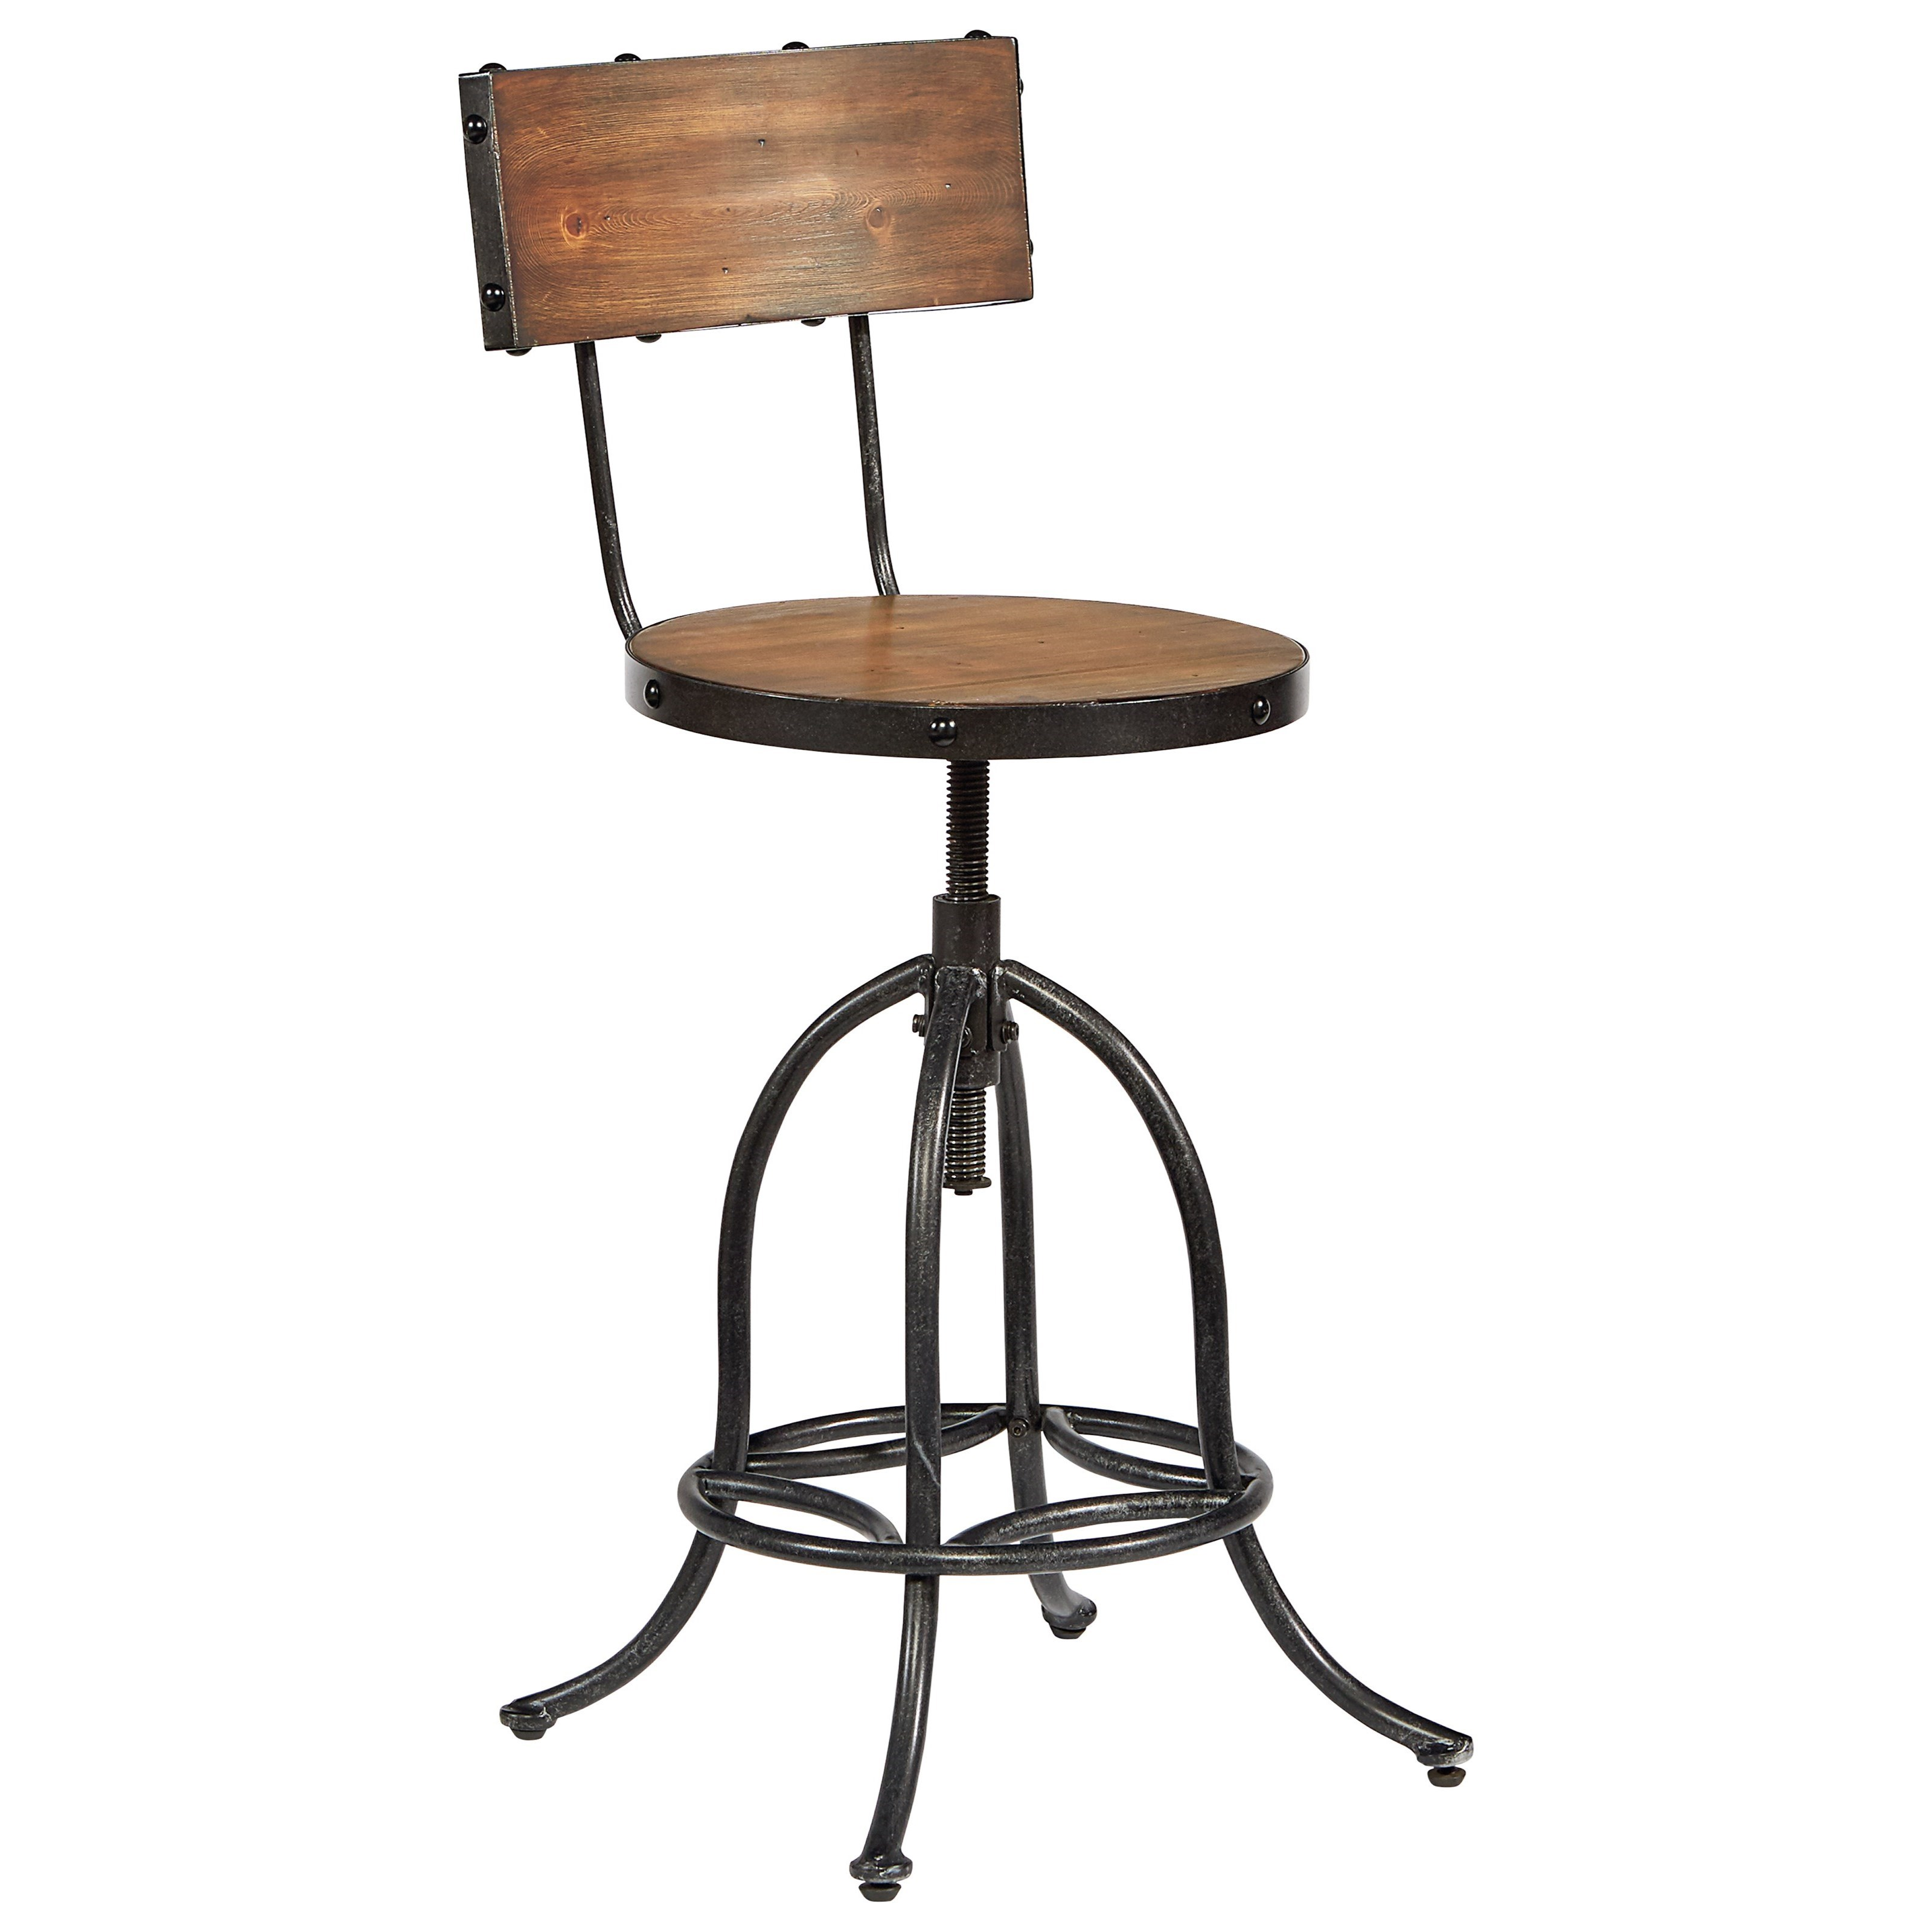 Magnolia Home By Joanna Gaines Accent Elements 8030124i Architect Stool With Bronze Legs And